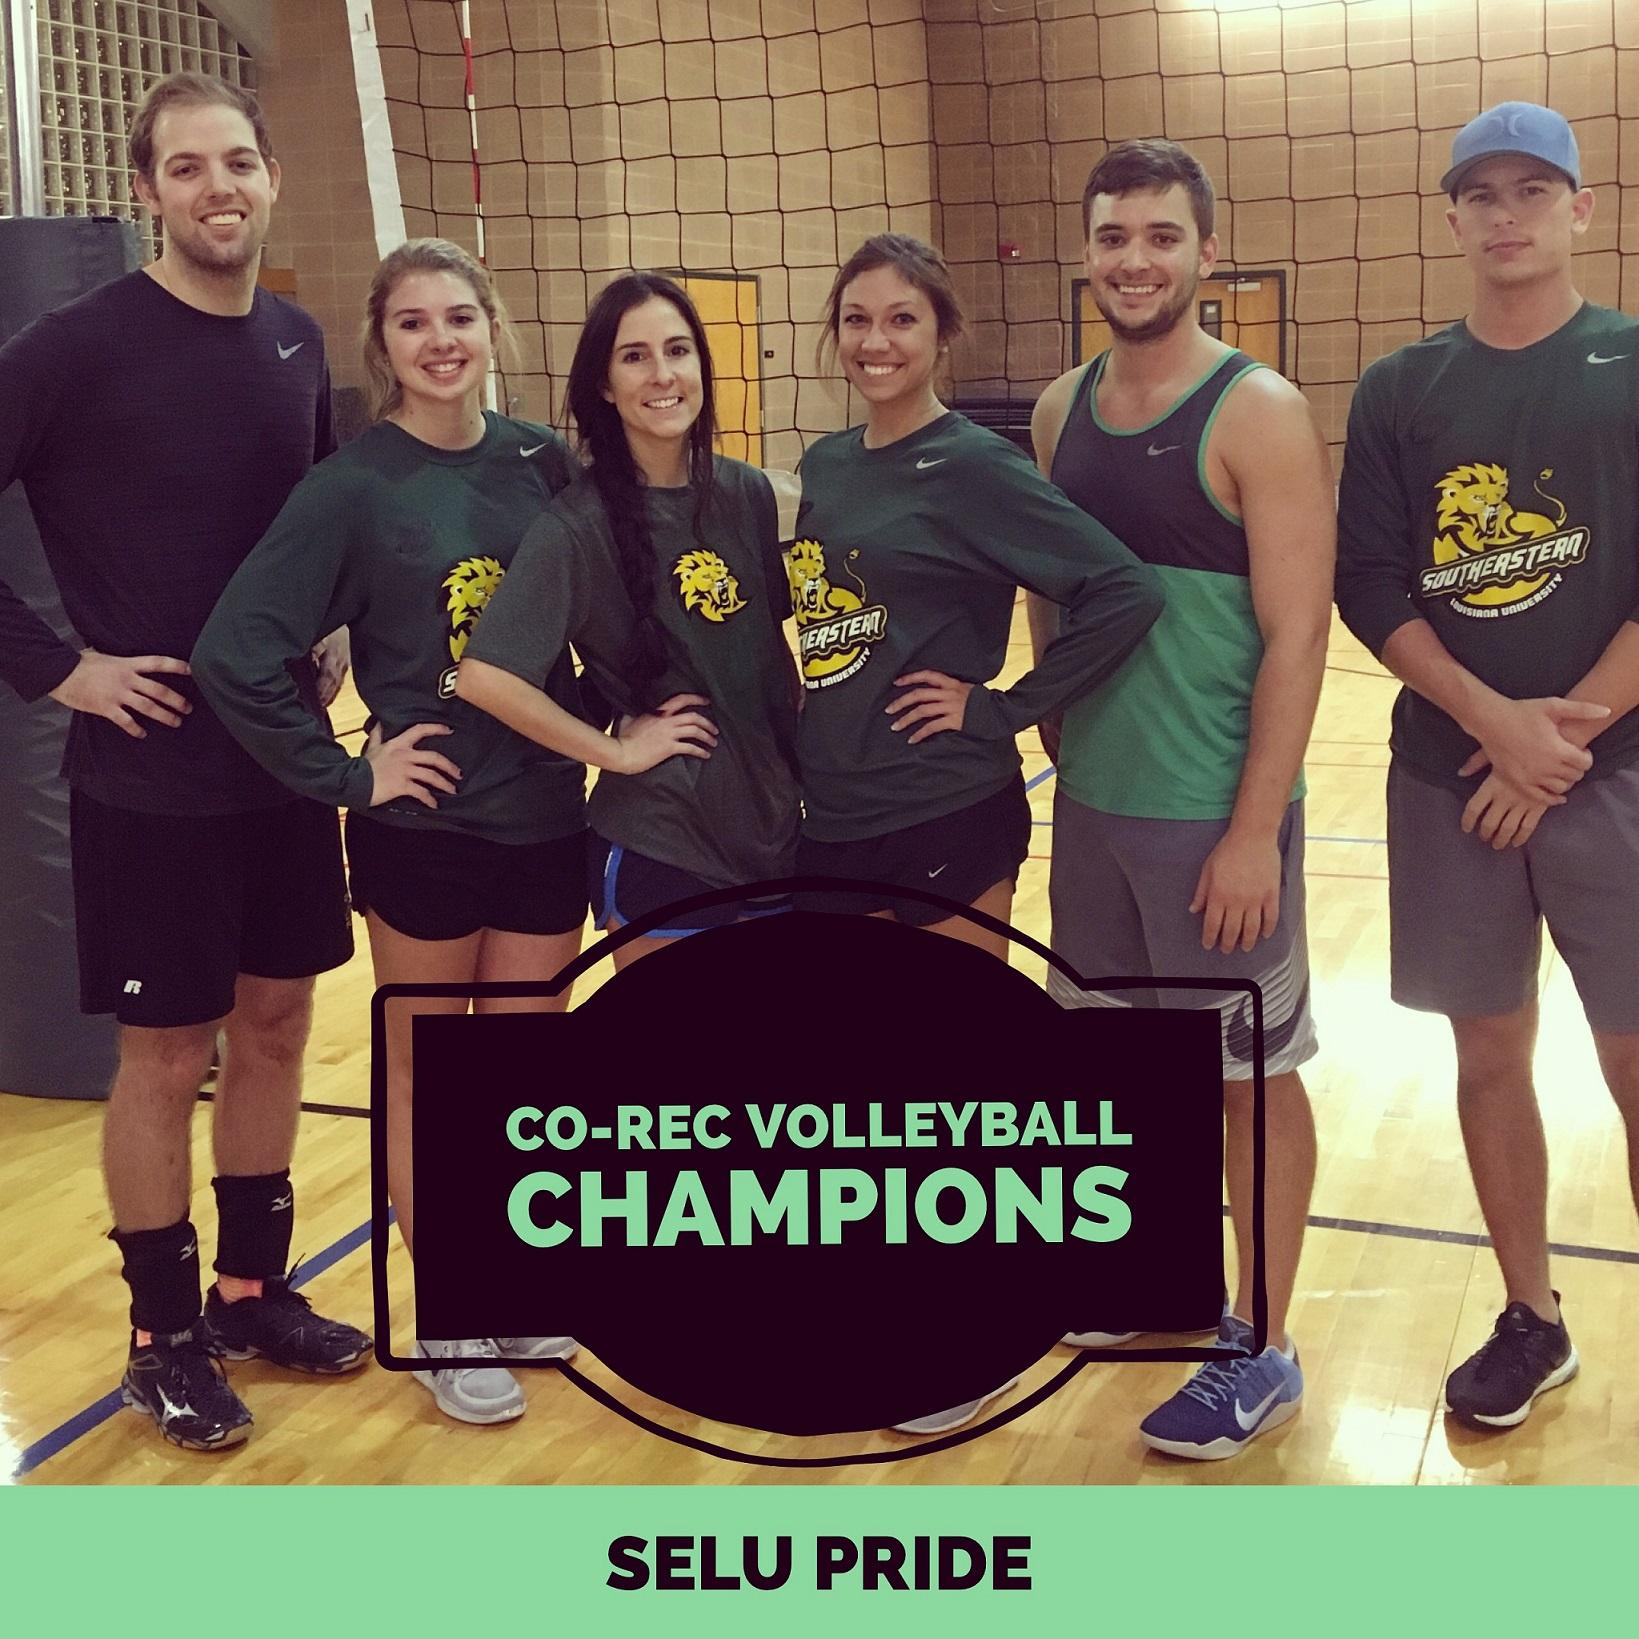 Co-Rec Volleyball Fall 2016 Intramural Champions